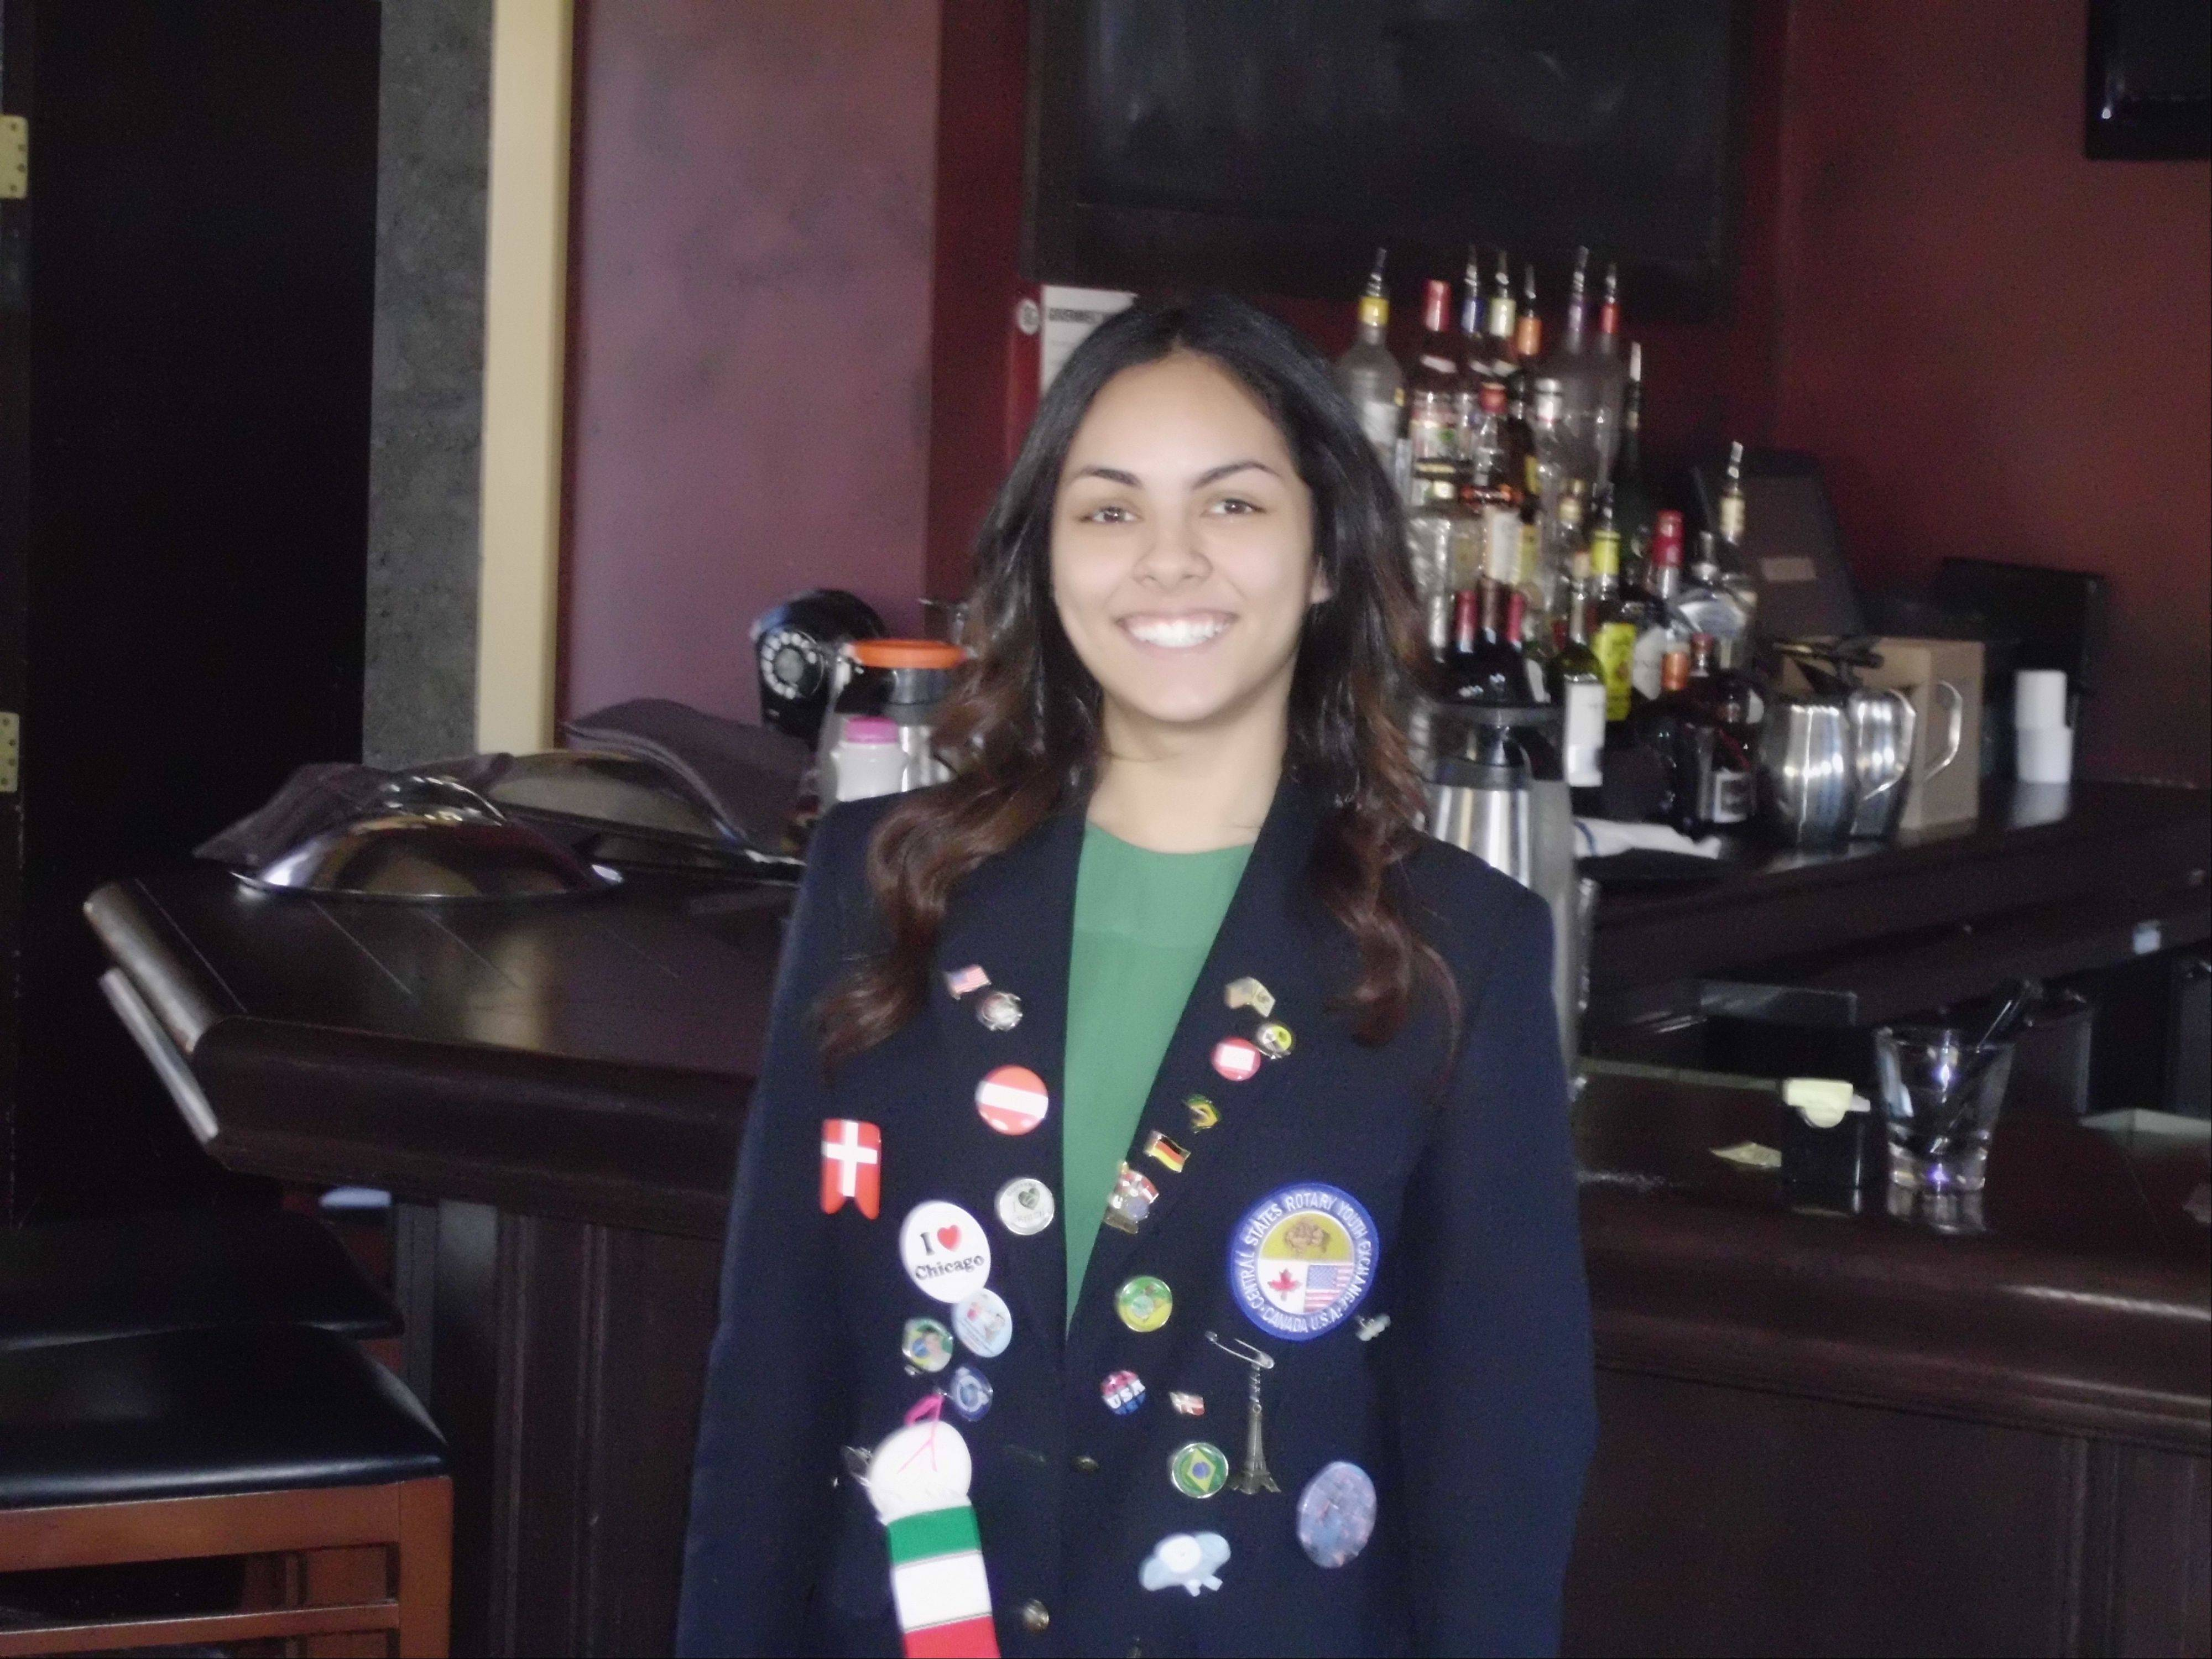 Burlington Central graduate Stephanie Foster is the Outbound Youth Exchange Student to Brazil, sponsored by St. Charles Rotary clubs and Elgin Rotary clubs of Rotary International District 6440.